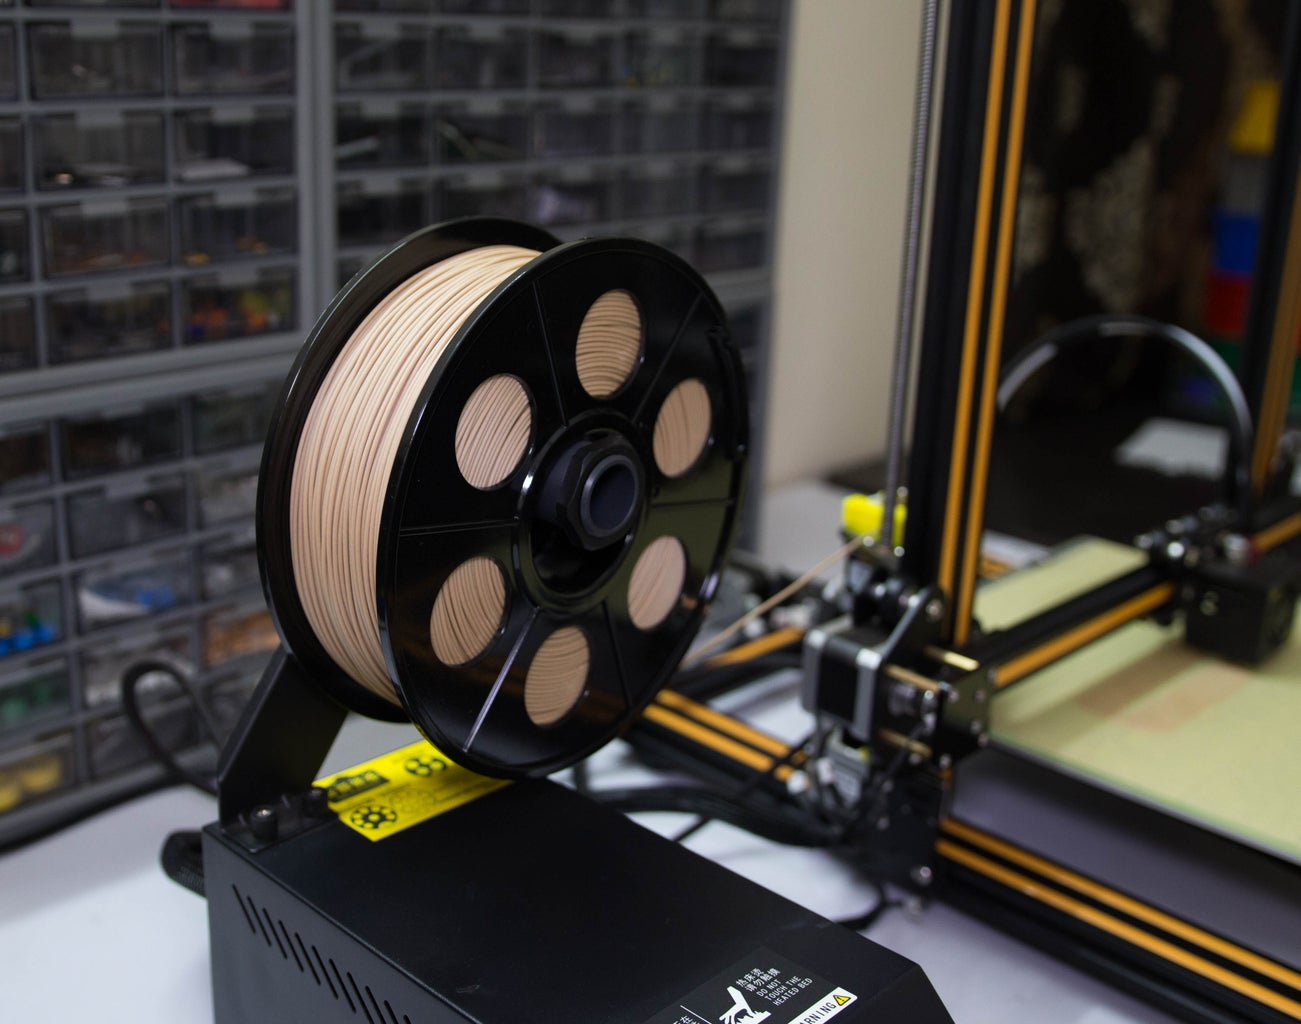 3D Printing the Base